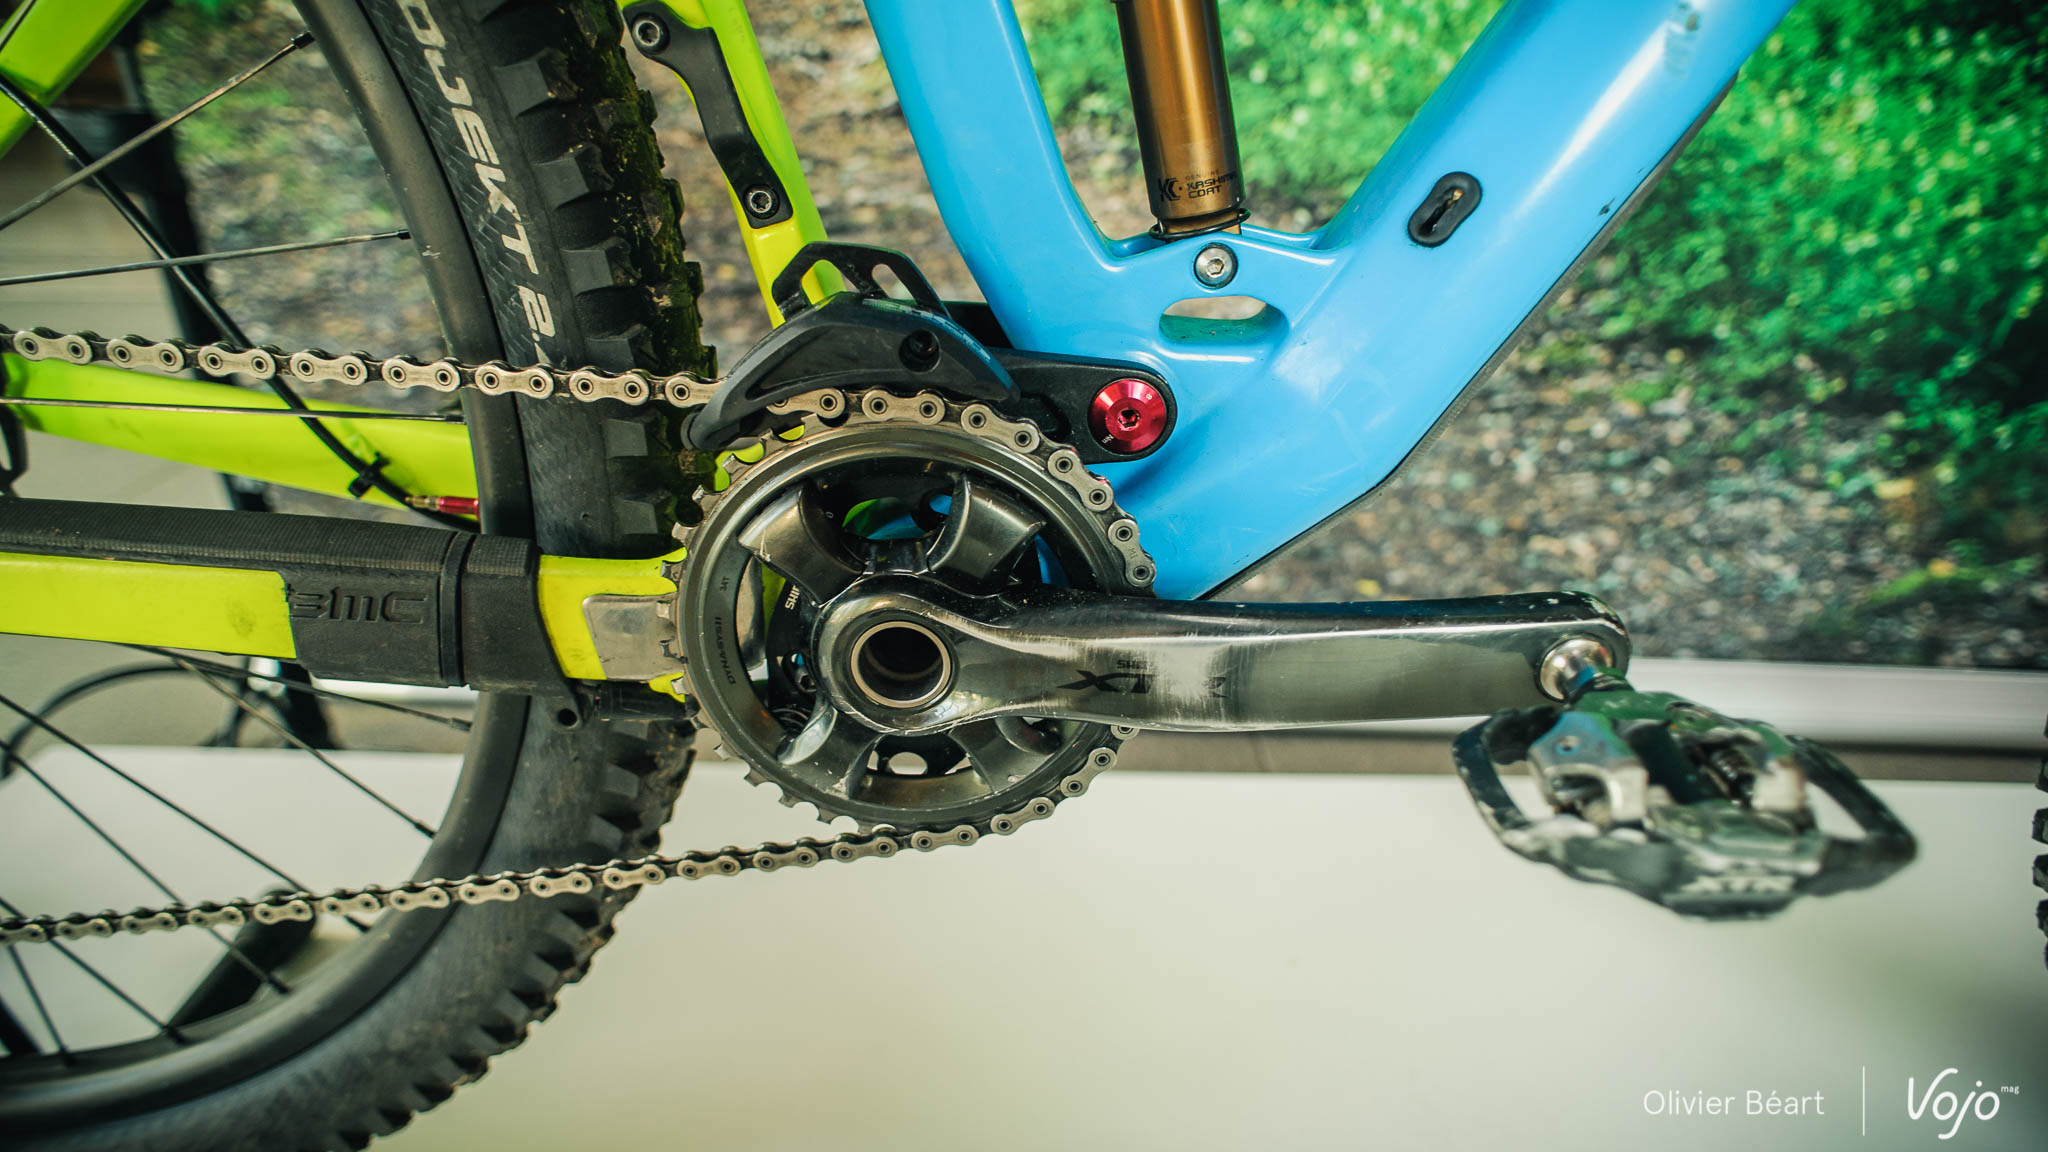 Bike_Check_BMC_Trailfox_Francois_Bailly_Maitre_Copyright_OBeart_VojoMag-1-3